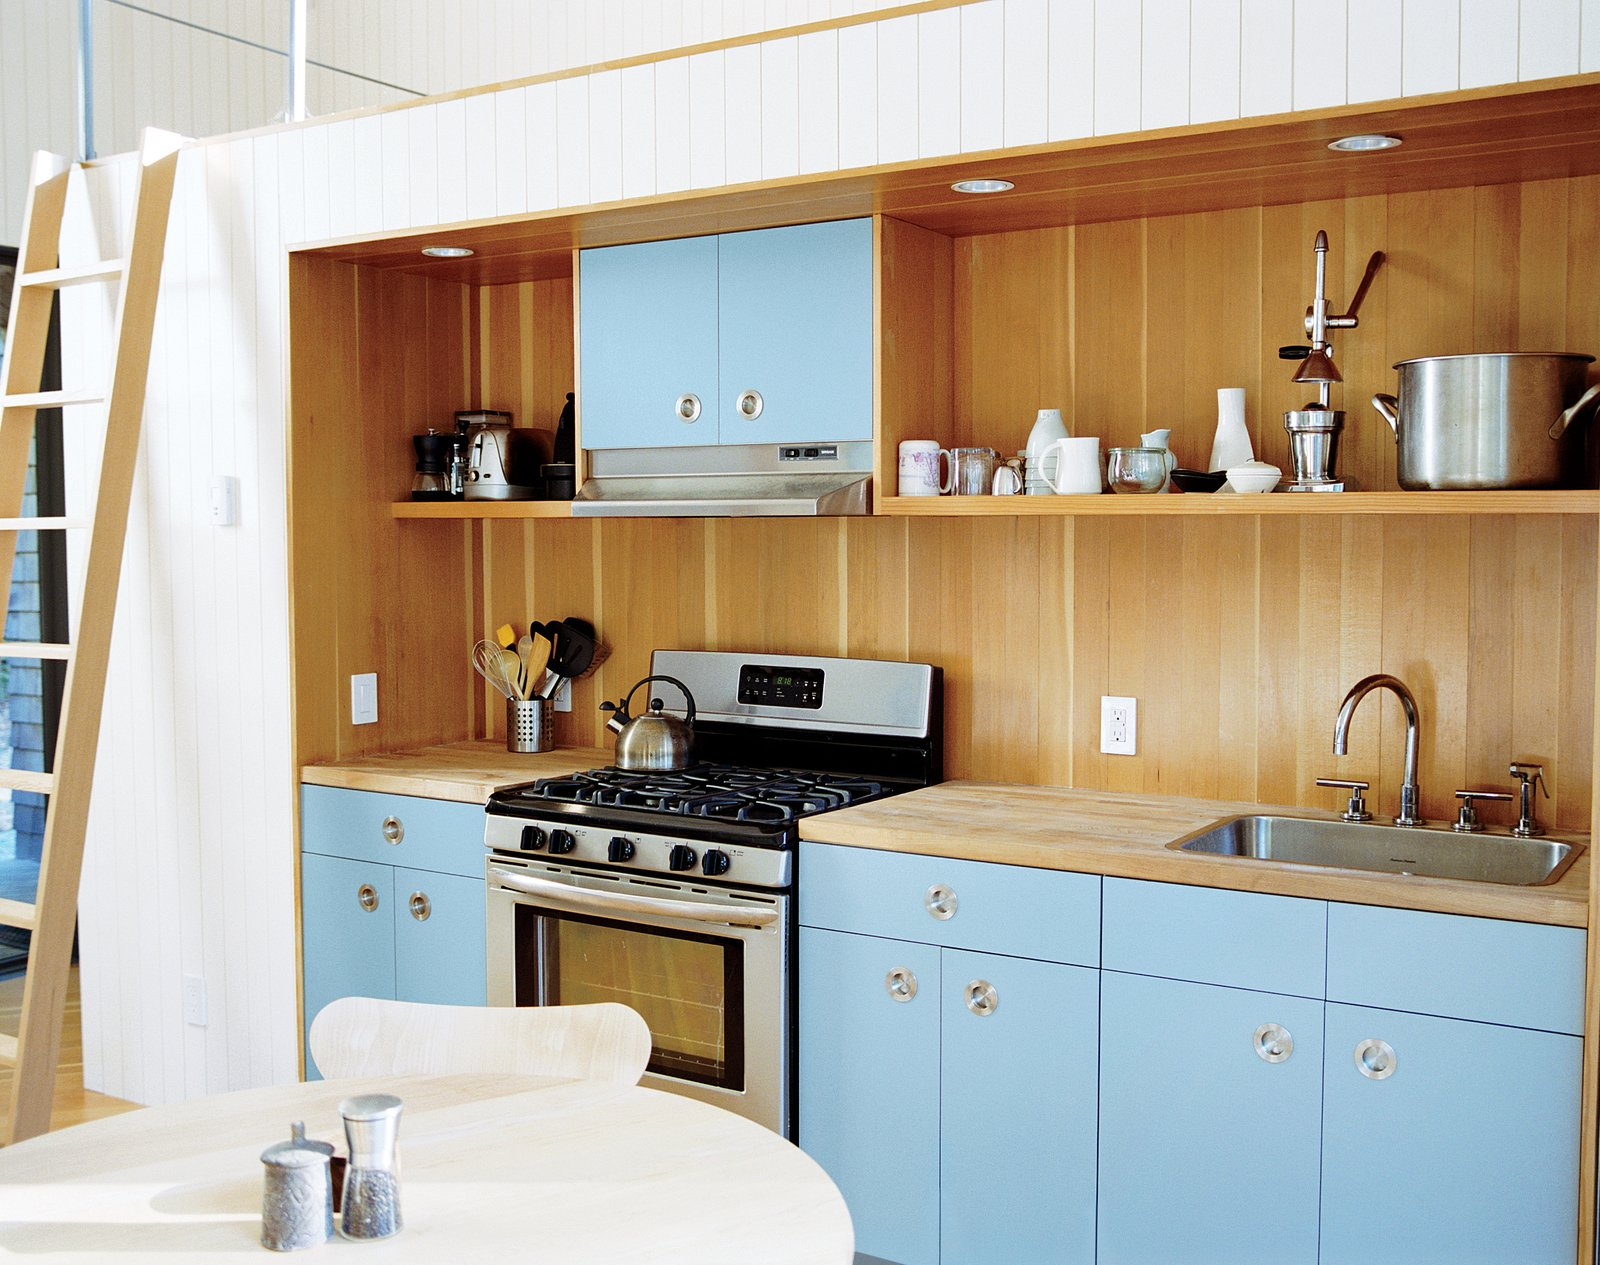 Kitchen, Colorful Cabinet, and Wood Cabinet The kitchen area, which has IKEA cabinets with custom doors and pulls by Doug Mockett, is also recessed, with a lofted area above it.  Photo 7 of 12 in This Tiny New England Cottage Is a No-Frills Weekend Hideaway